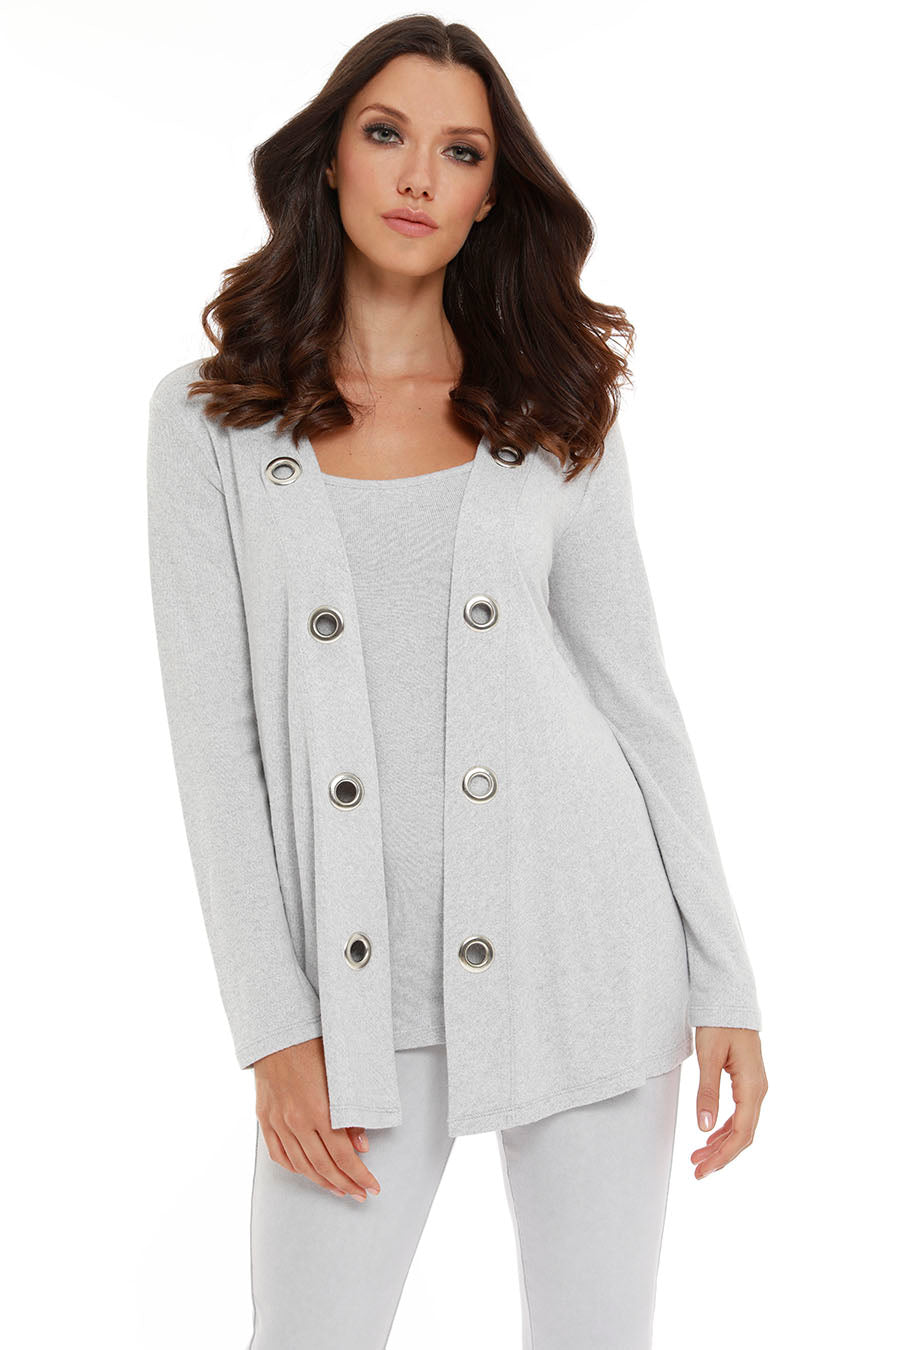 Juliana Kashmira Open Grommet Cardigan